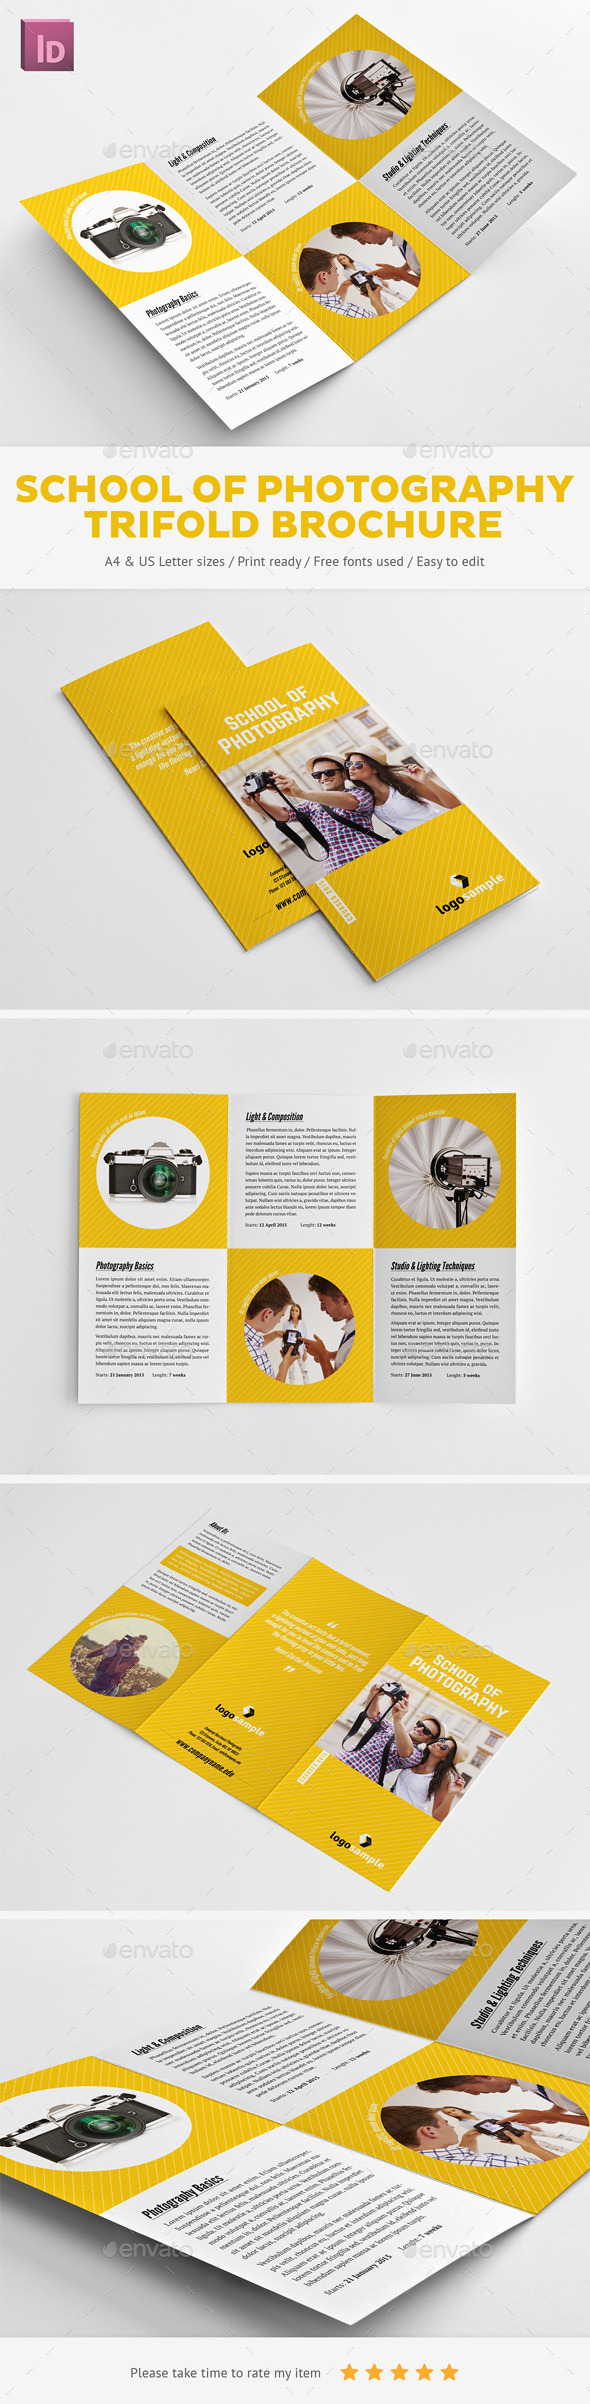 GraphicRiver School of Photography Trifold Brochure 9962466